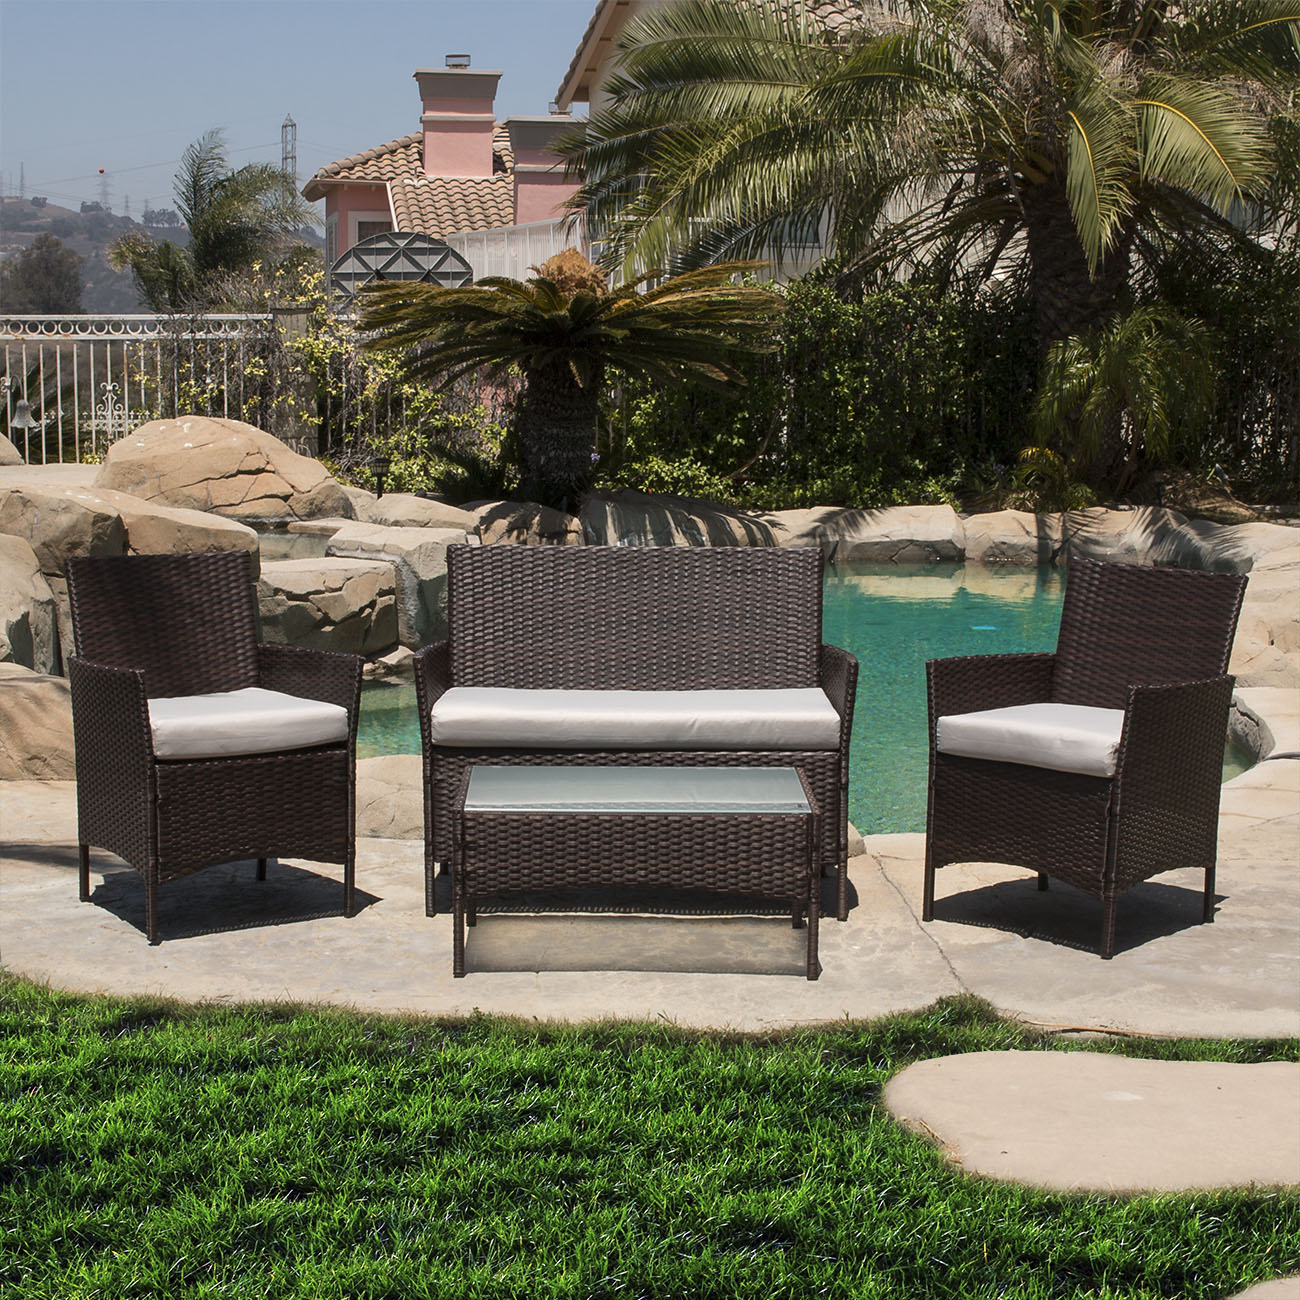 Rattan Outdoor Chairs 4 Pc Rattan Furniture Set Outdoor Patio Garden Sectional